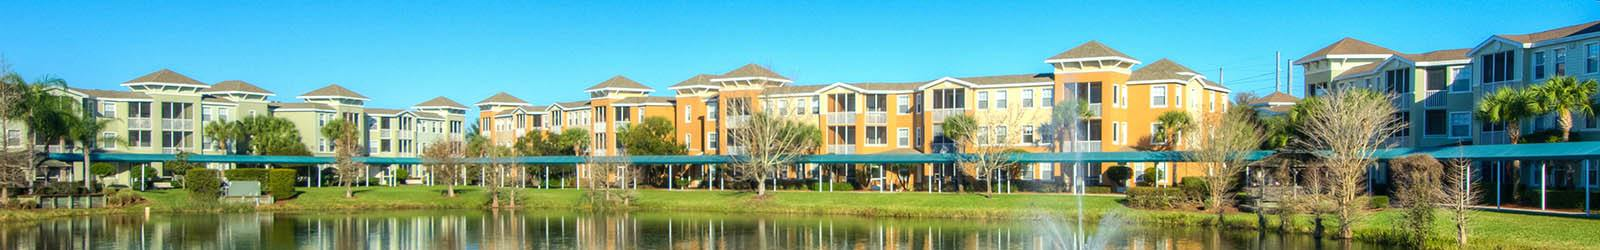 Assisted senior living in Florida